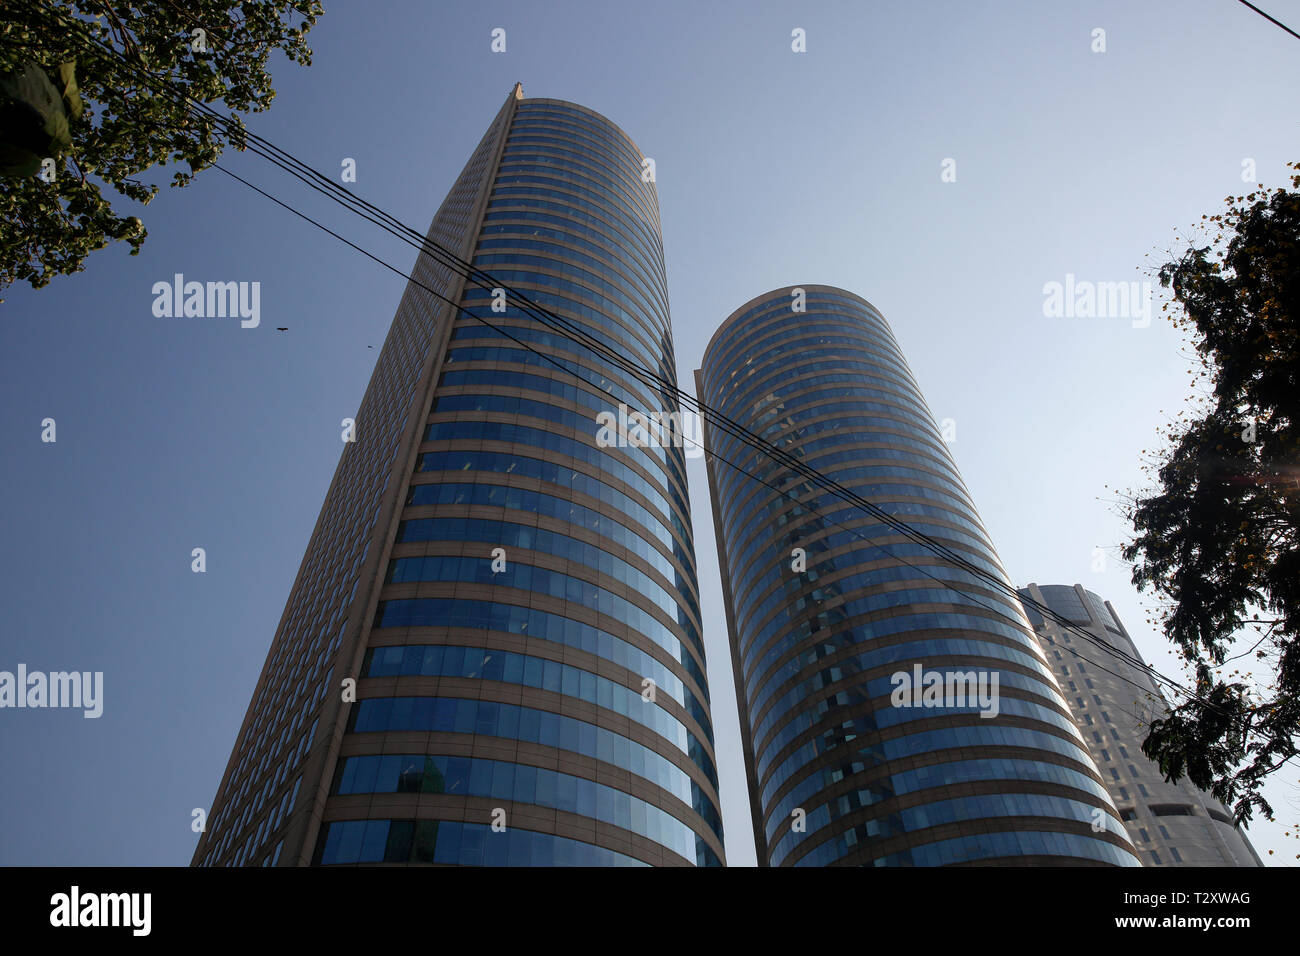 The World Trade Centre is the tallest completed building at Colombo in Sri Lanka - Stock Image